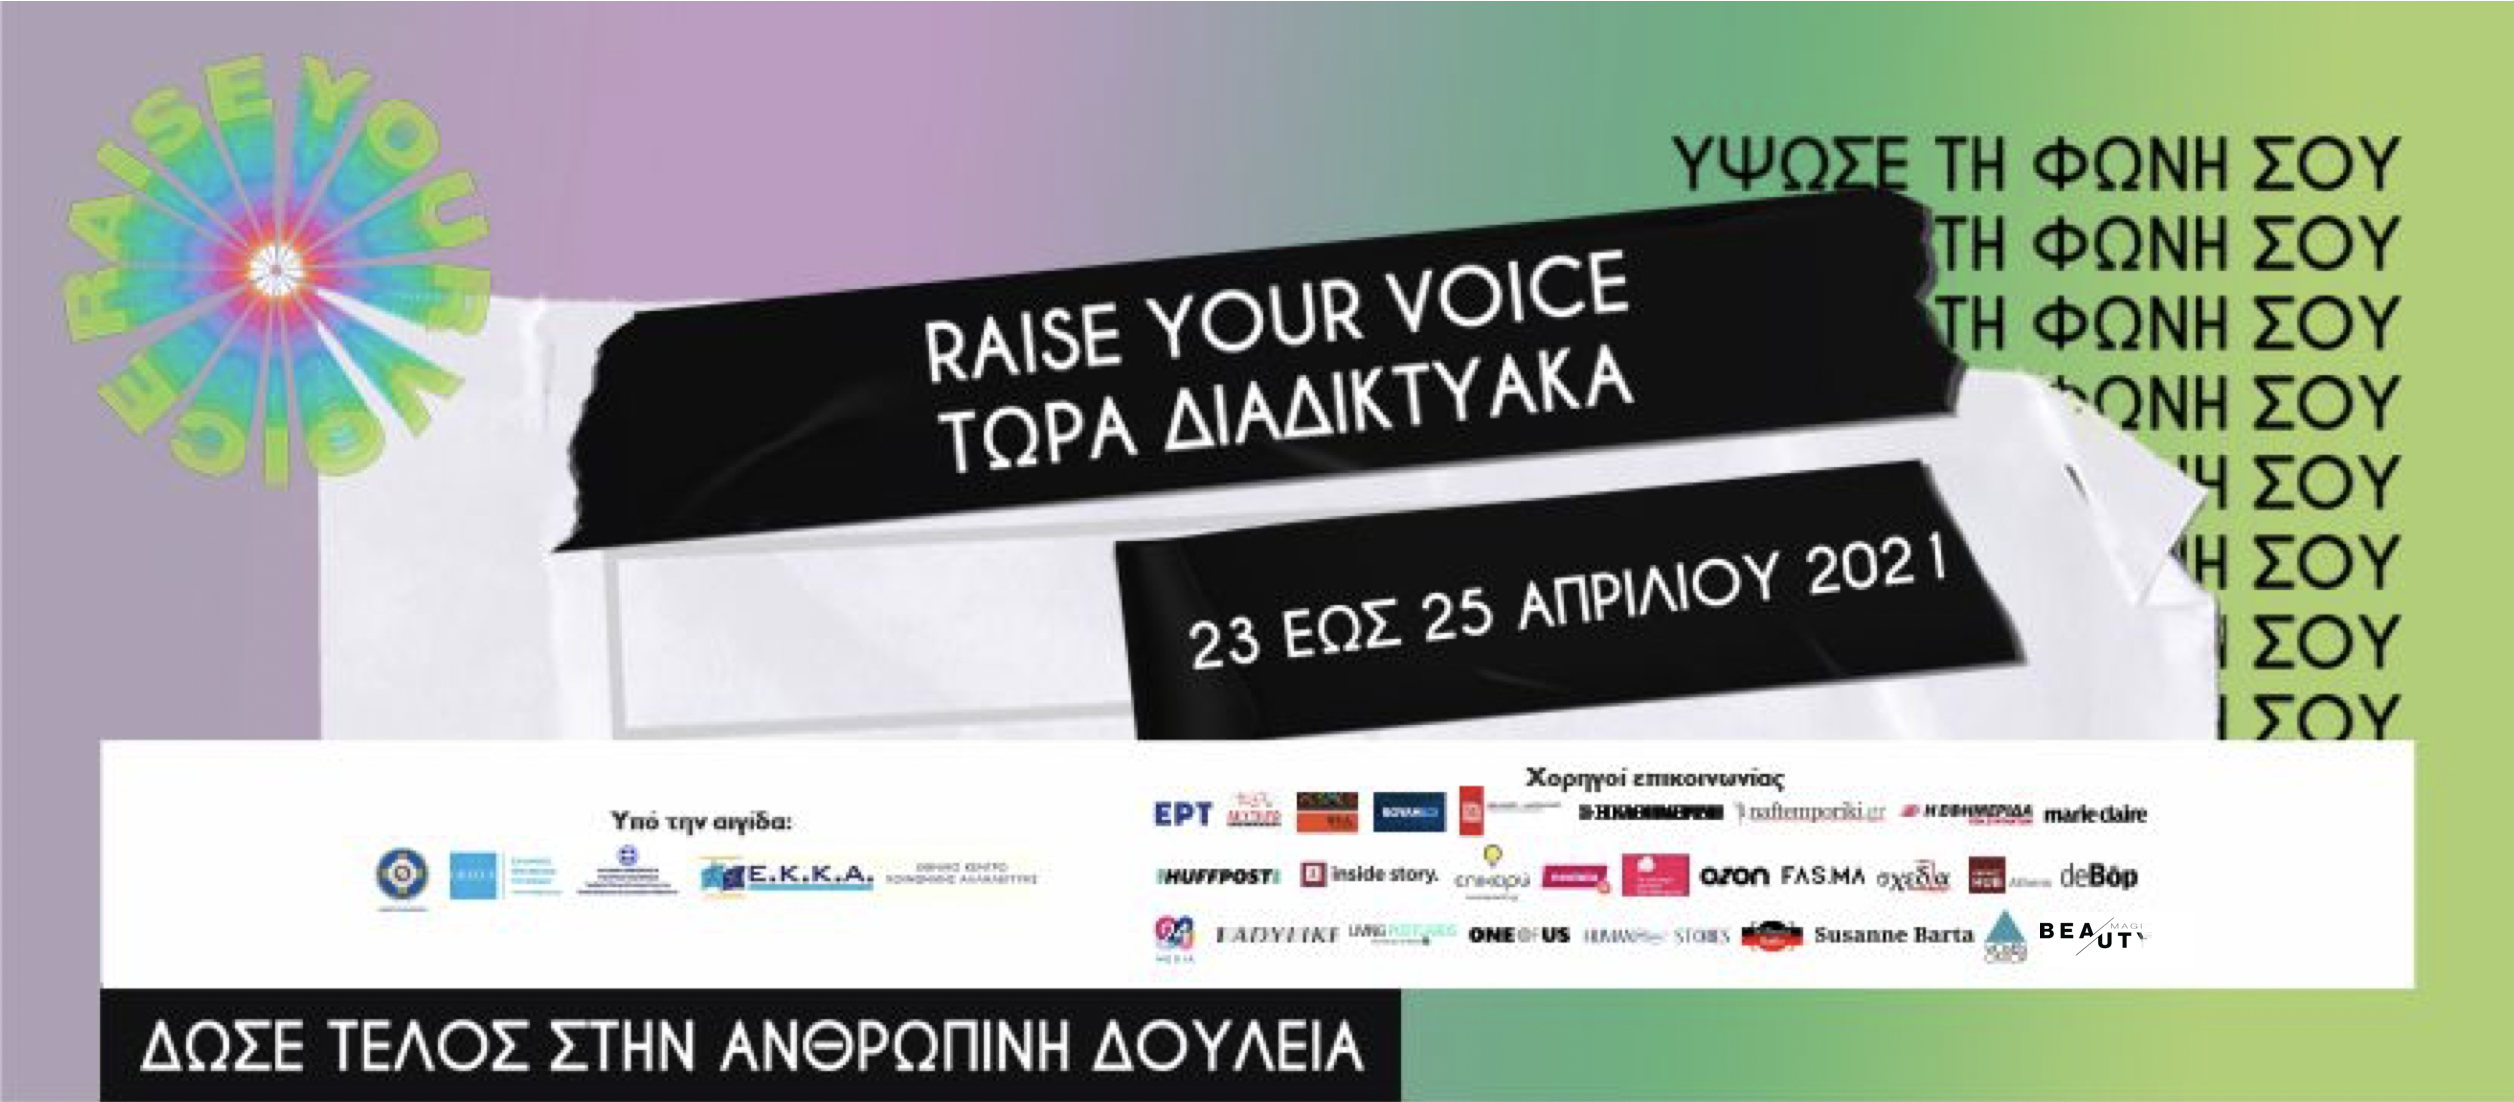 Raise Your Voice Festival Greece - beautymagic.gr